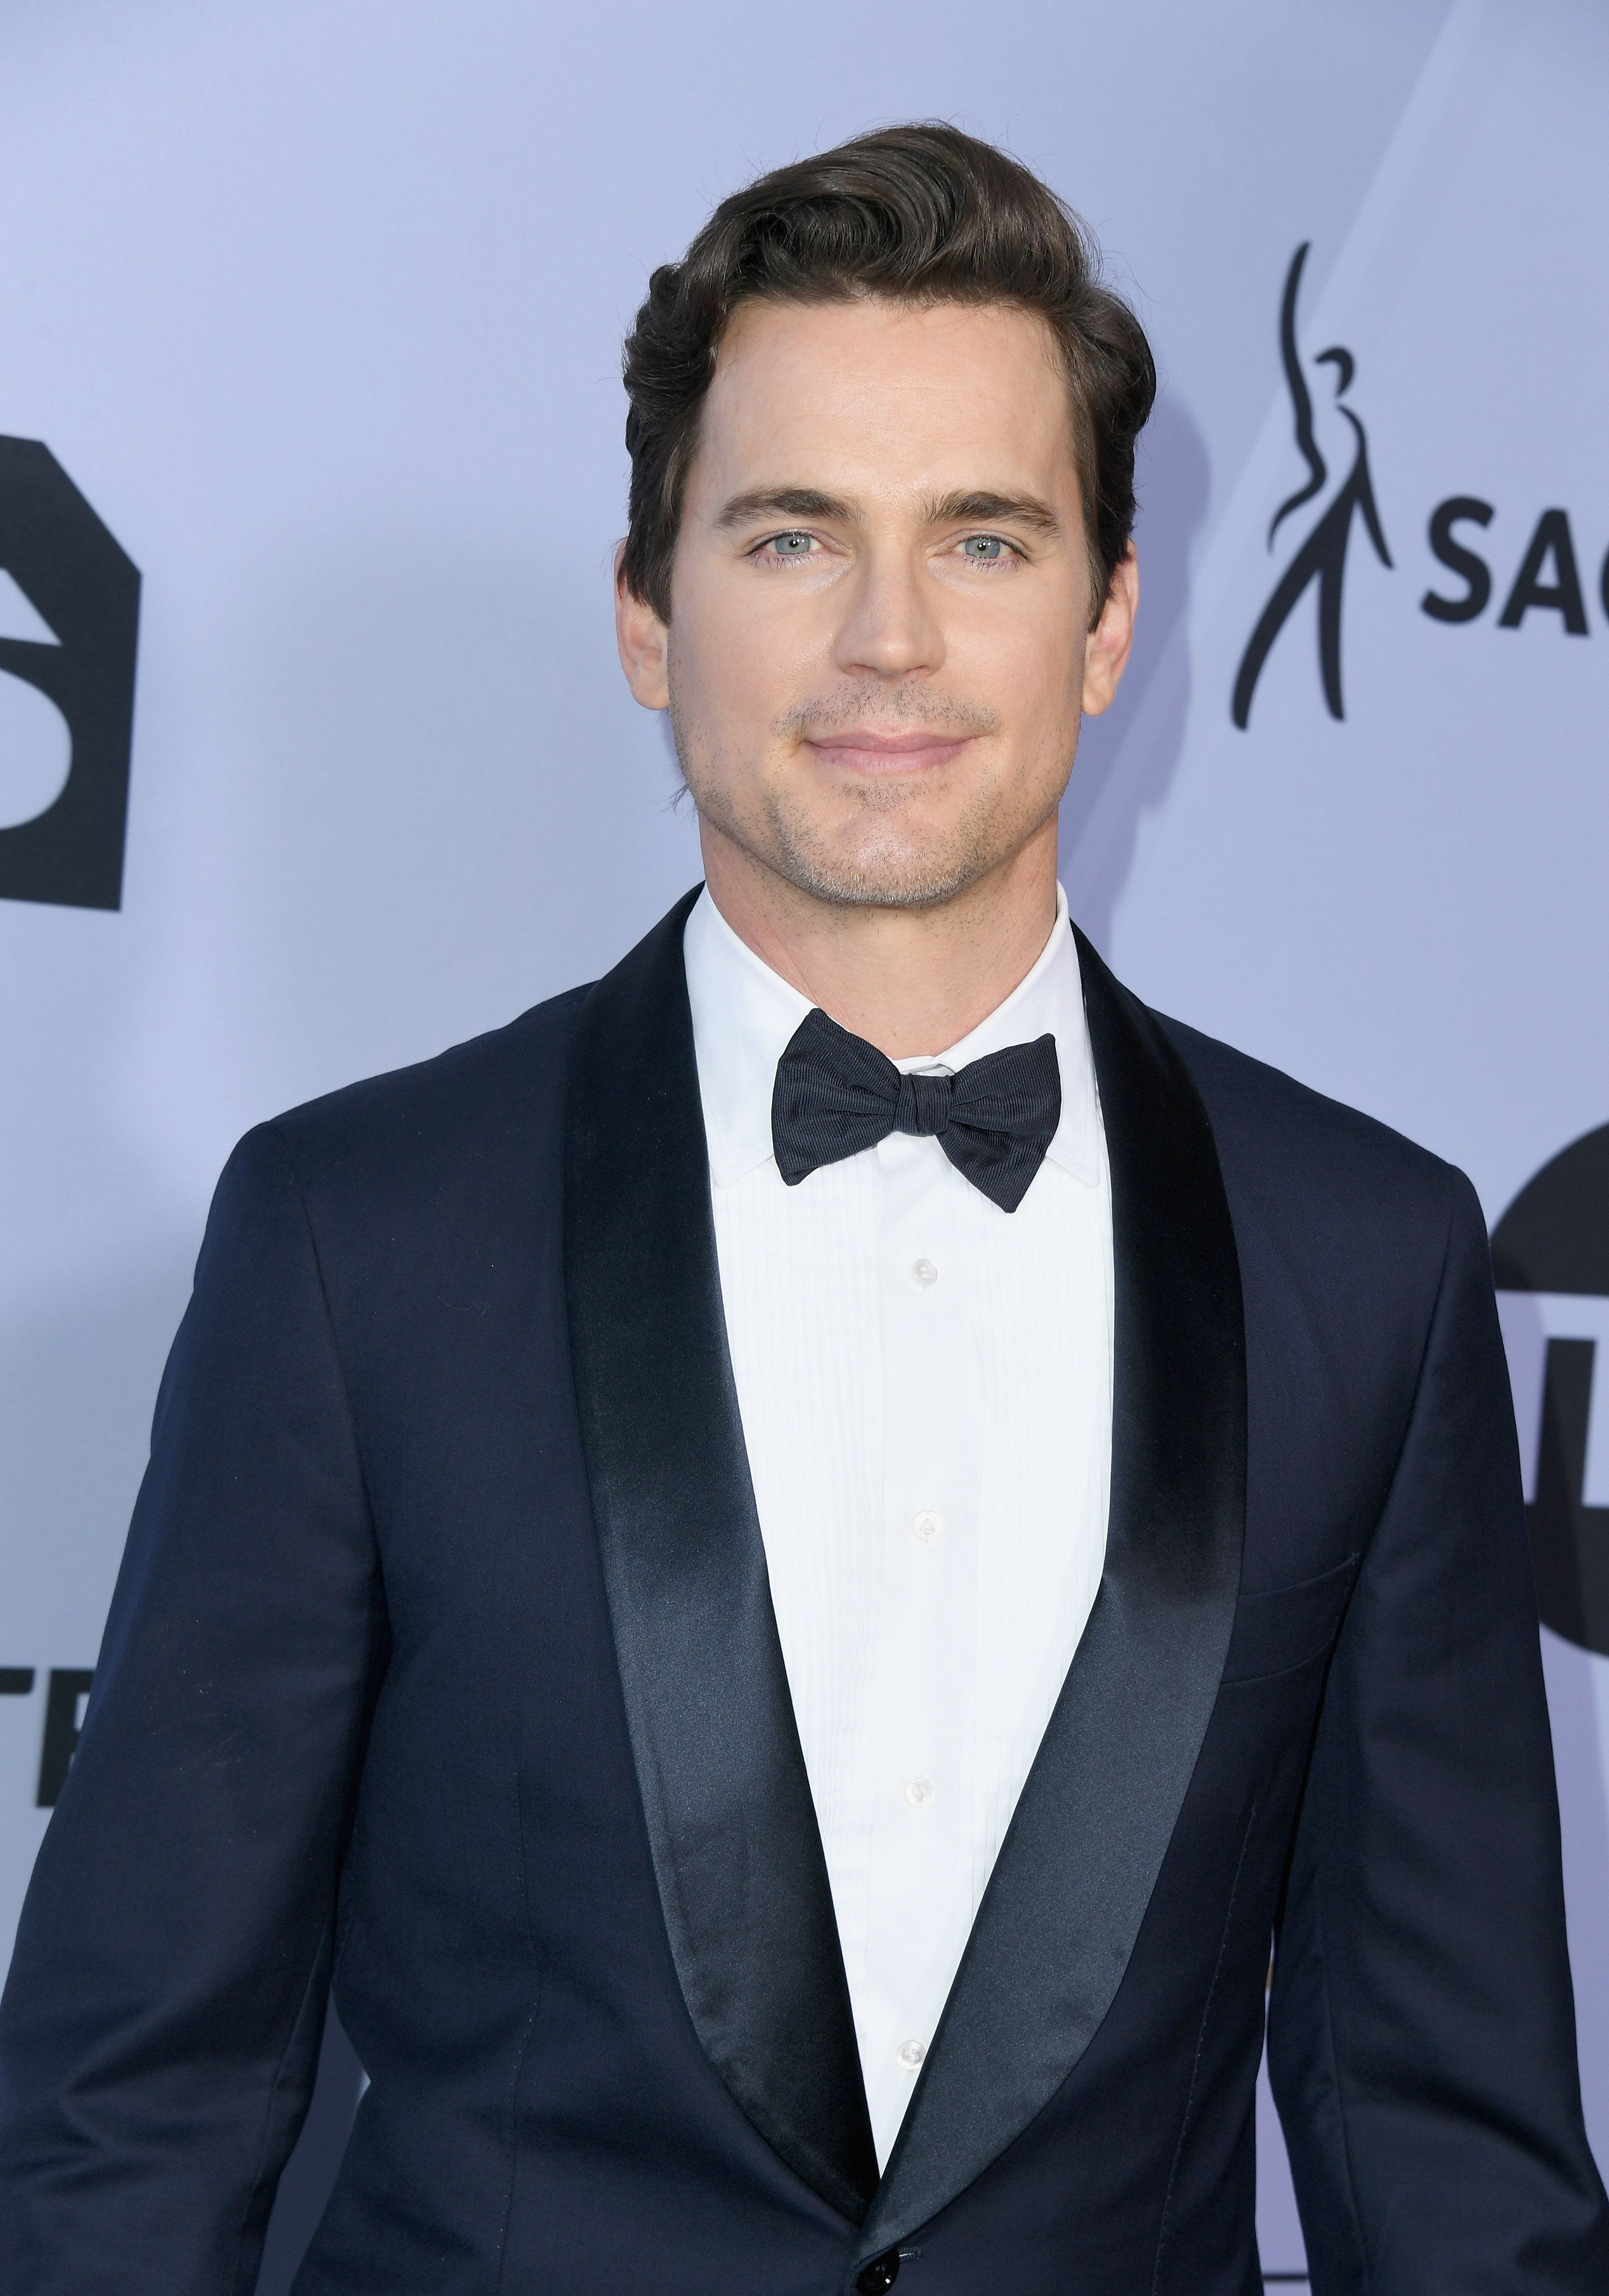 LOS ANGELES, CA - JANUARY 27:  Matt Bomer attends the 25th Annual Screen Actors Guild Awards at The Shrine Auditorium on January 27, 2019 in Los Angeles, California.  (Photo by Jon Kopaloff/Getty Images)